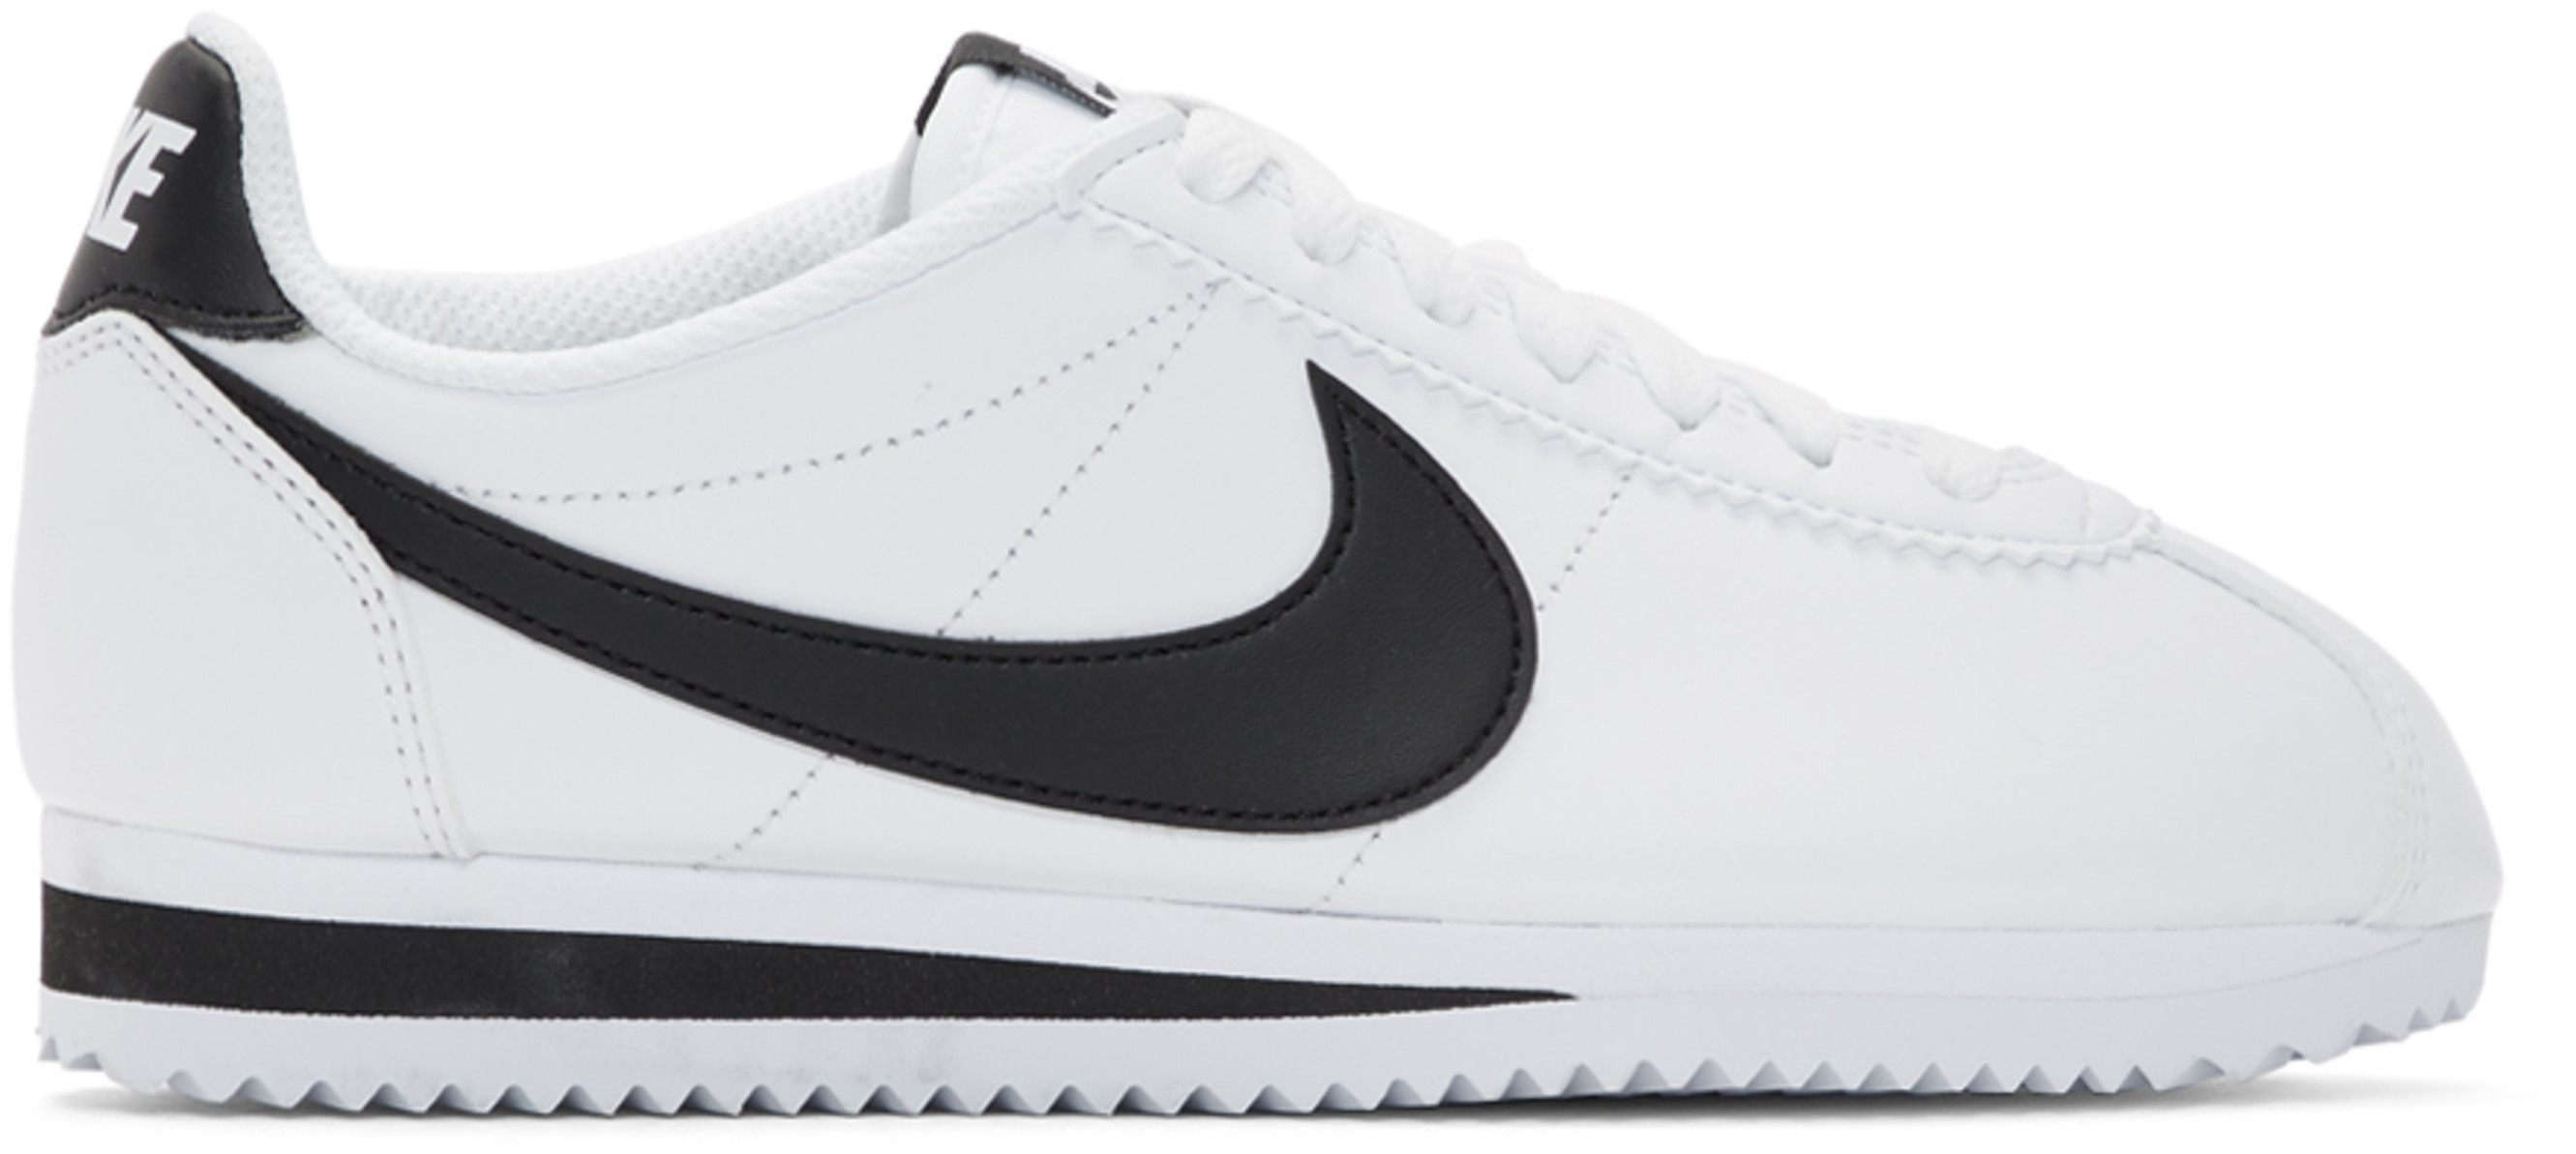 fd7f33ca9cf Nike for Women SS19 Collection